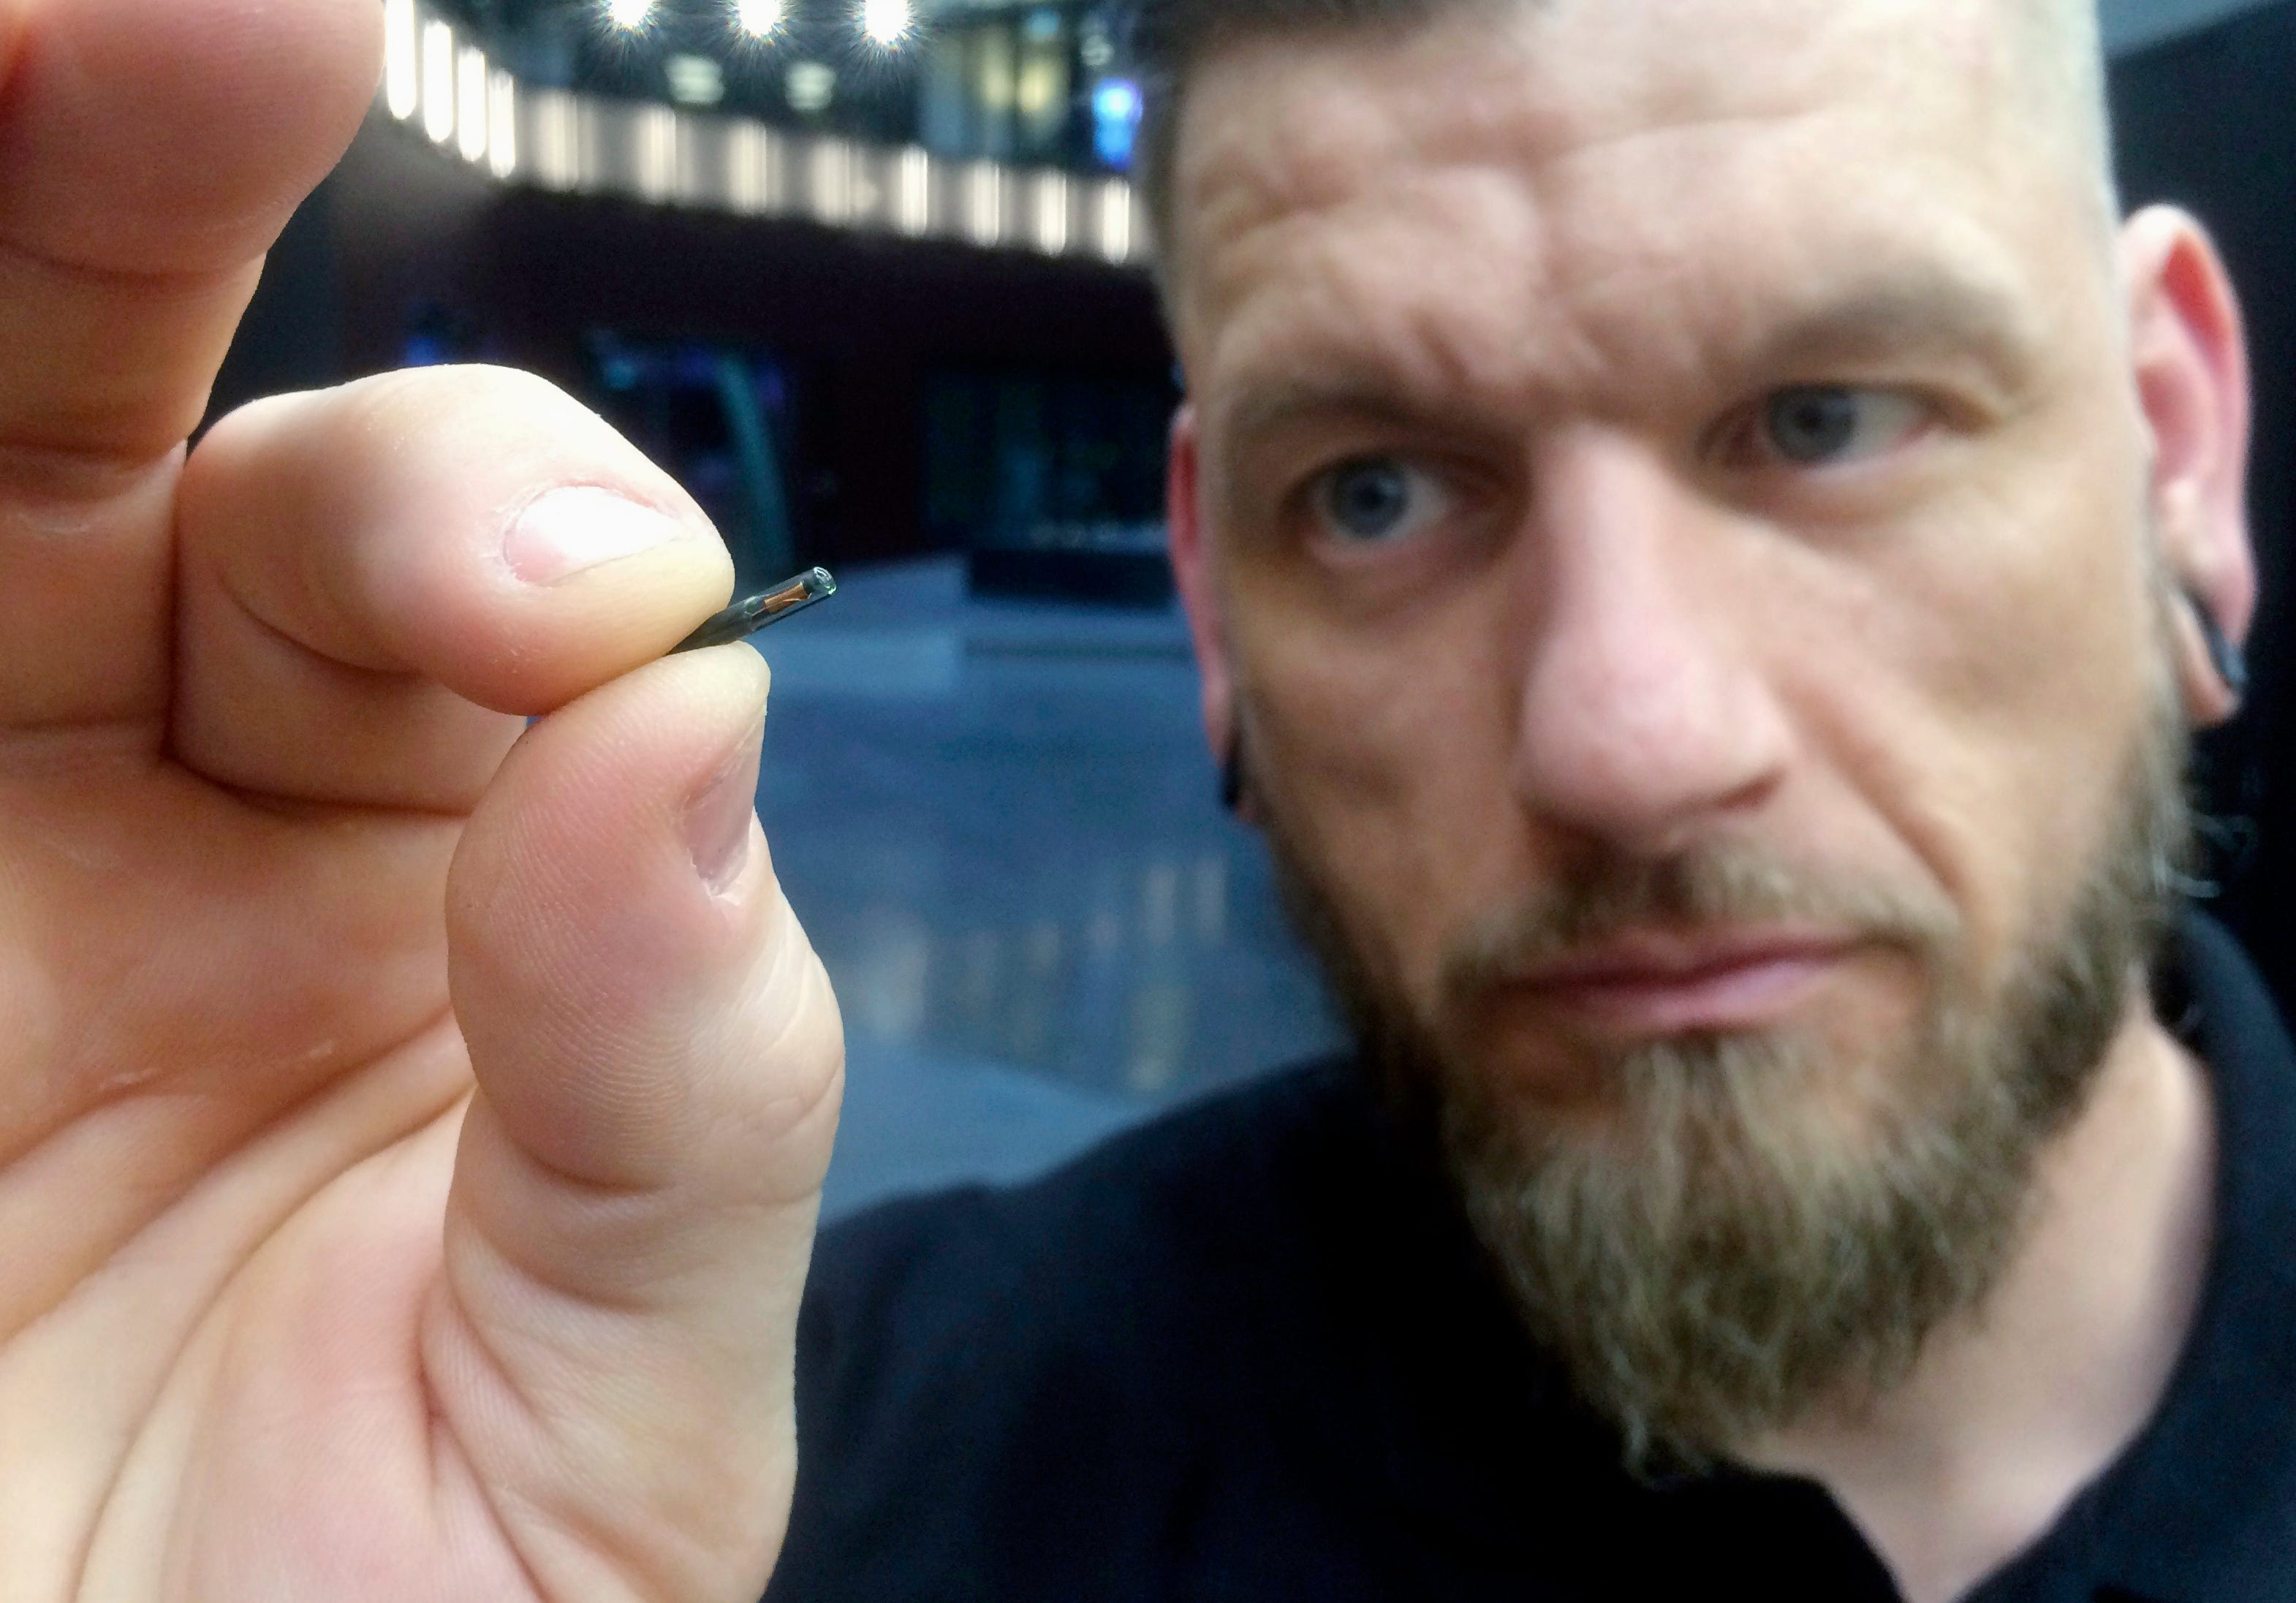 Business groups in UK raise concerns over microchipping employees | AZ Central